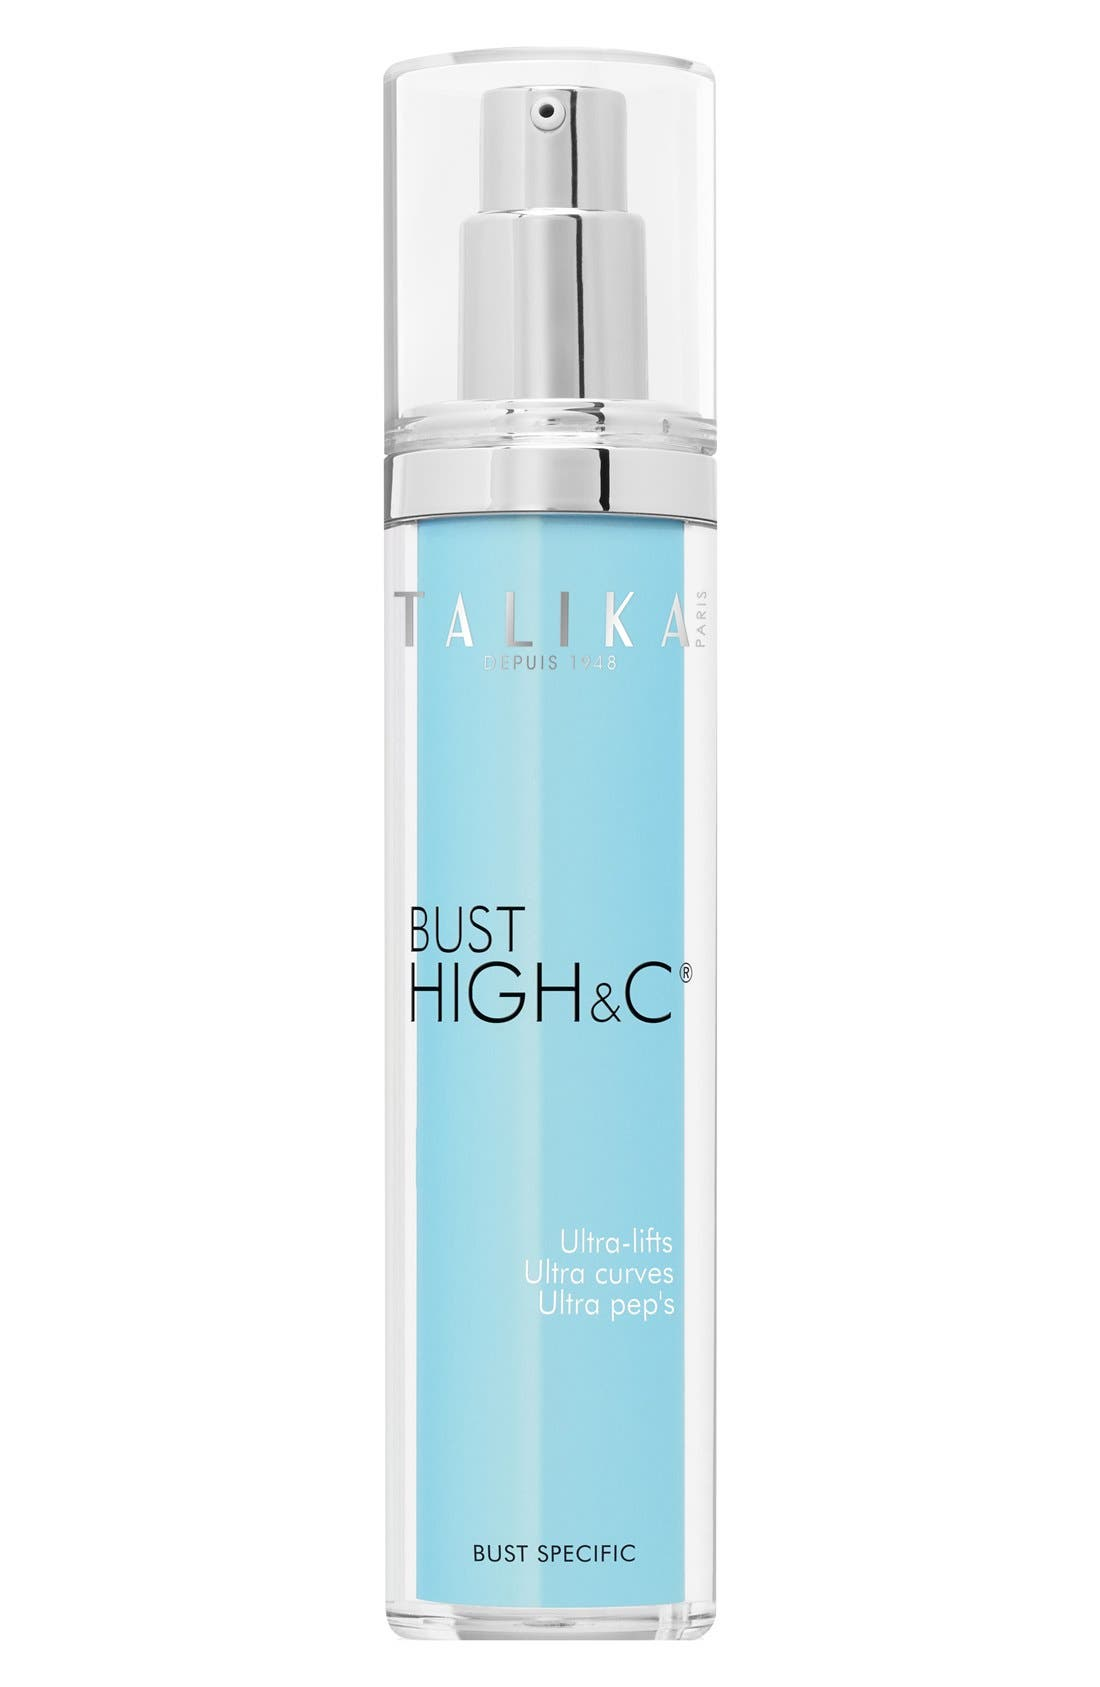 TALIKA 'Bust High & C' Serum